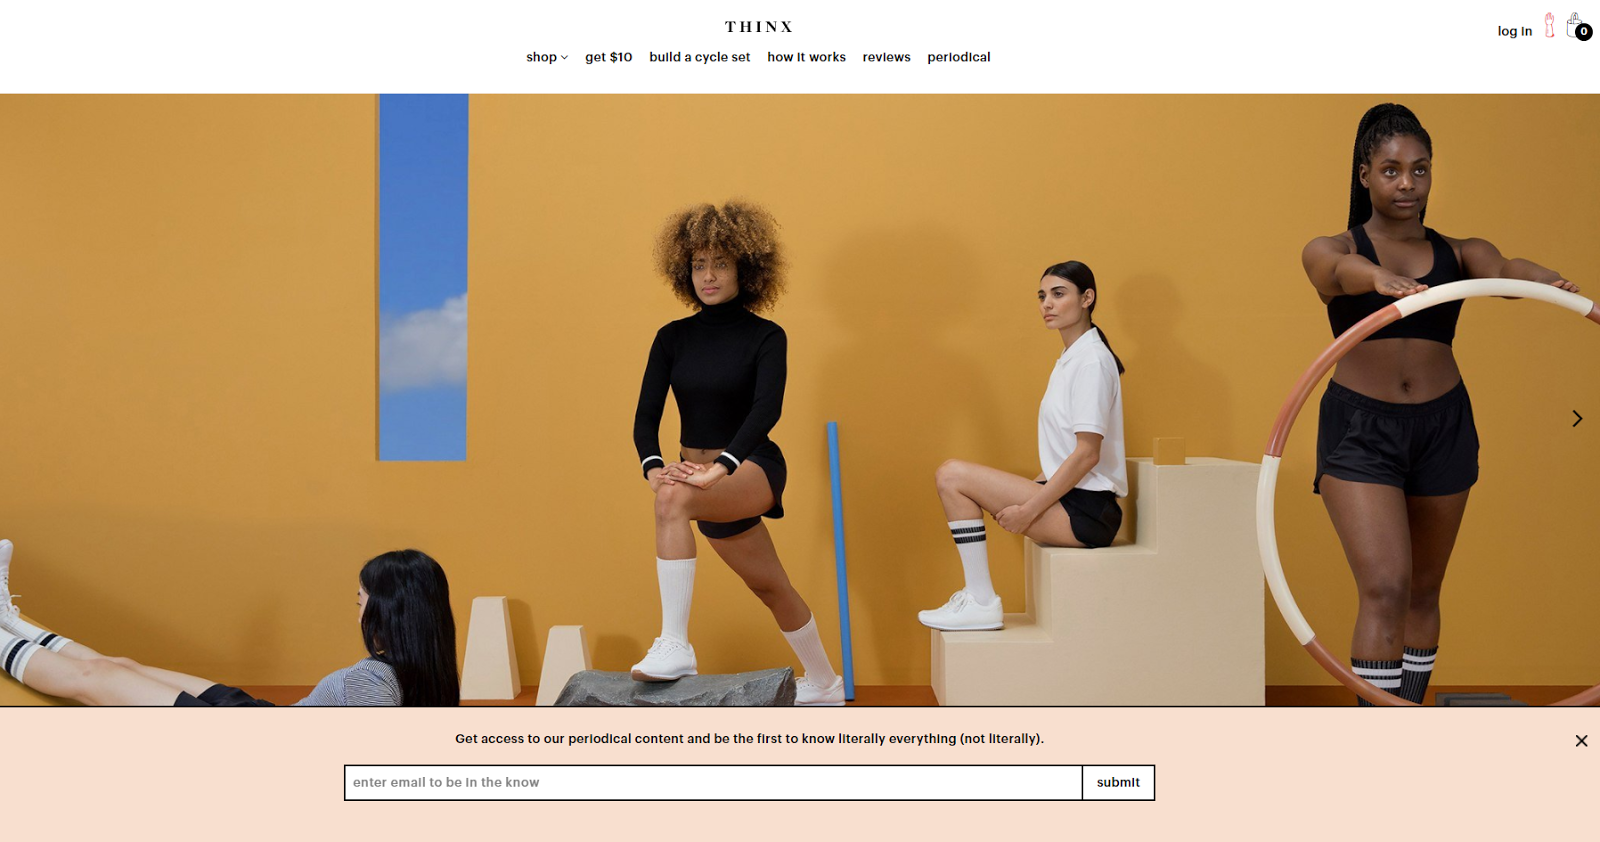 Thinx's email bar